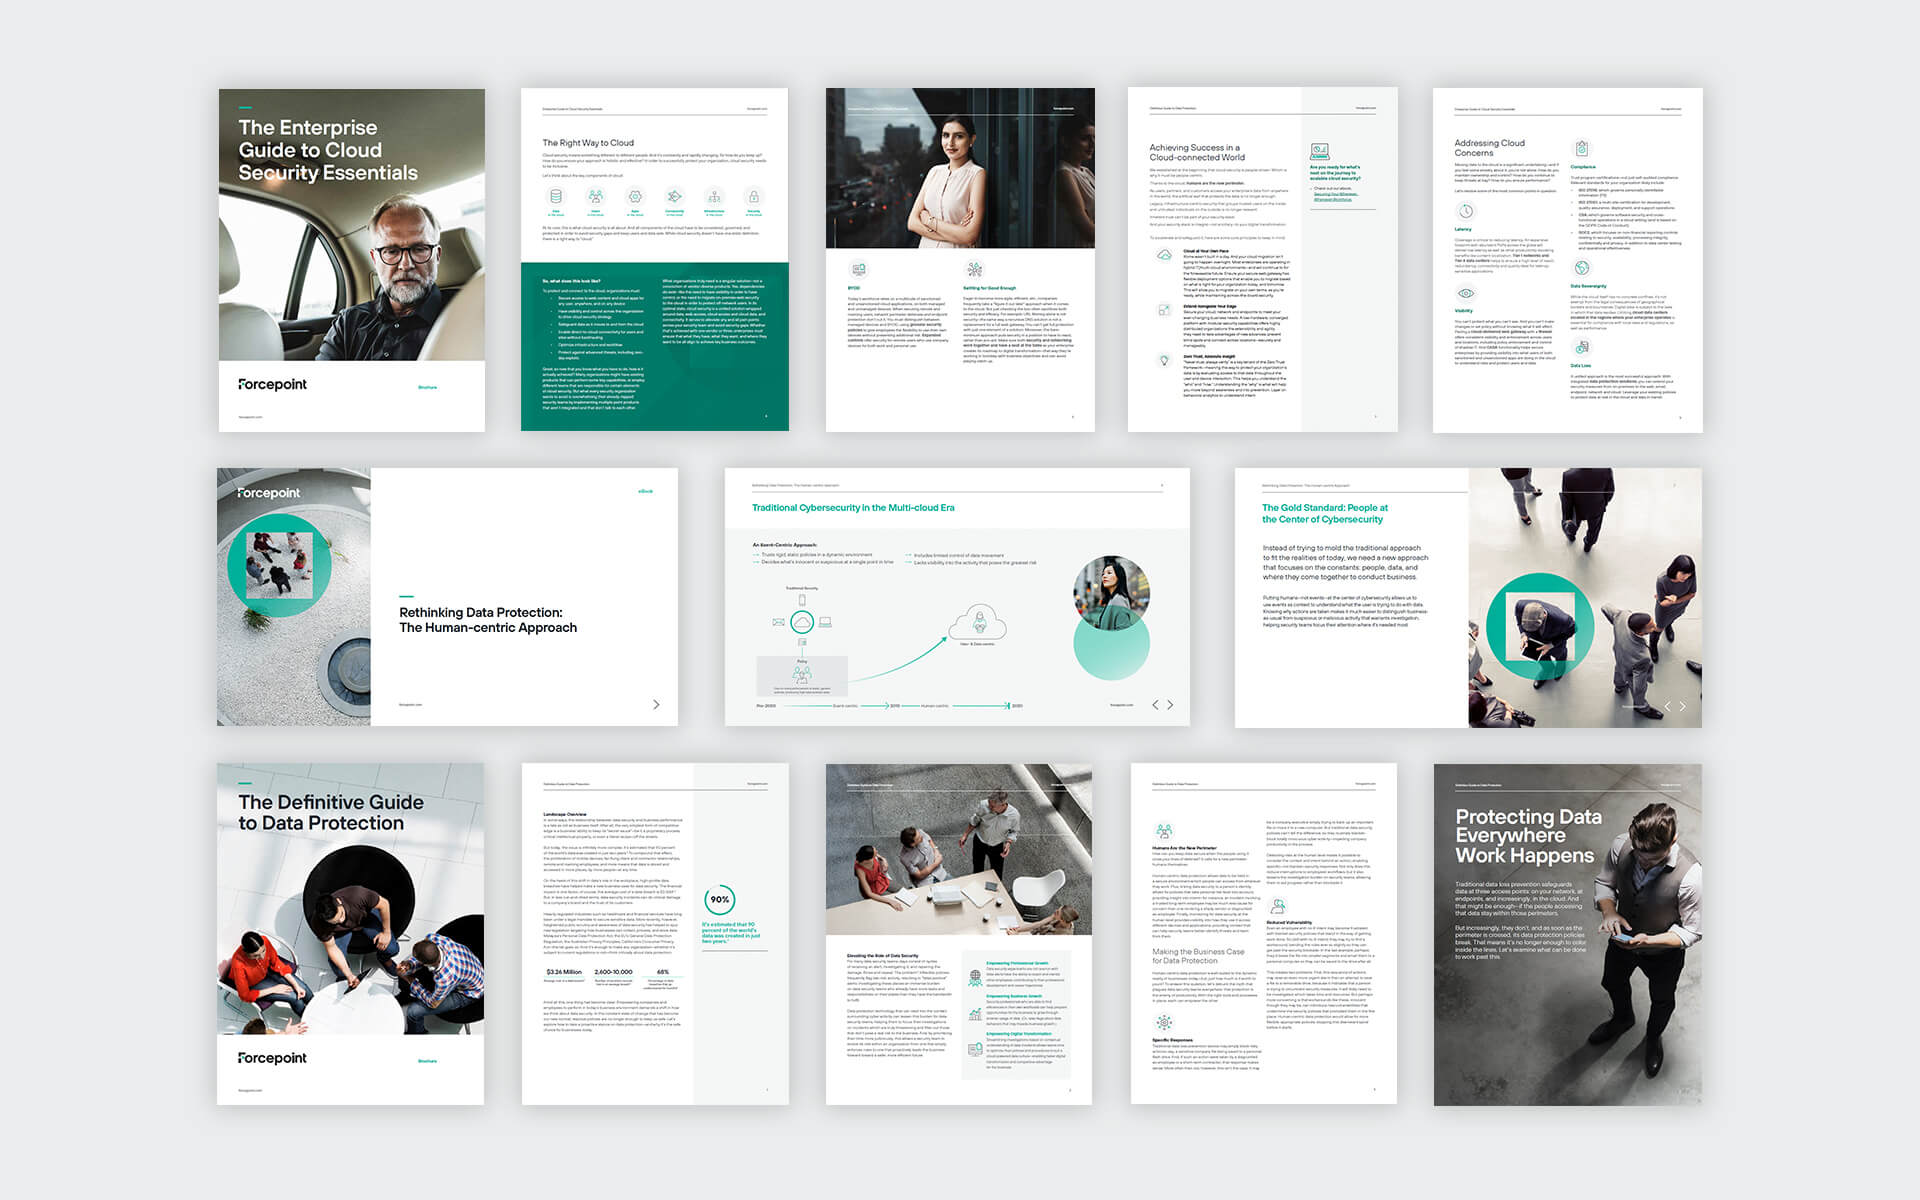 Forcepoint case study Mock up